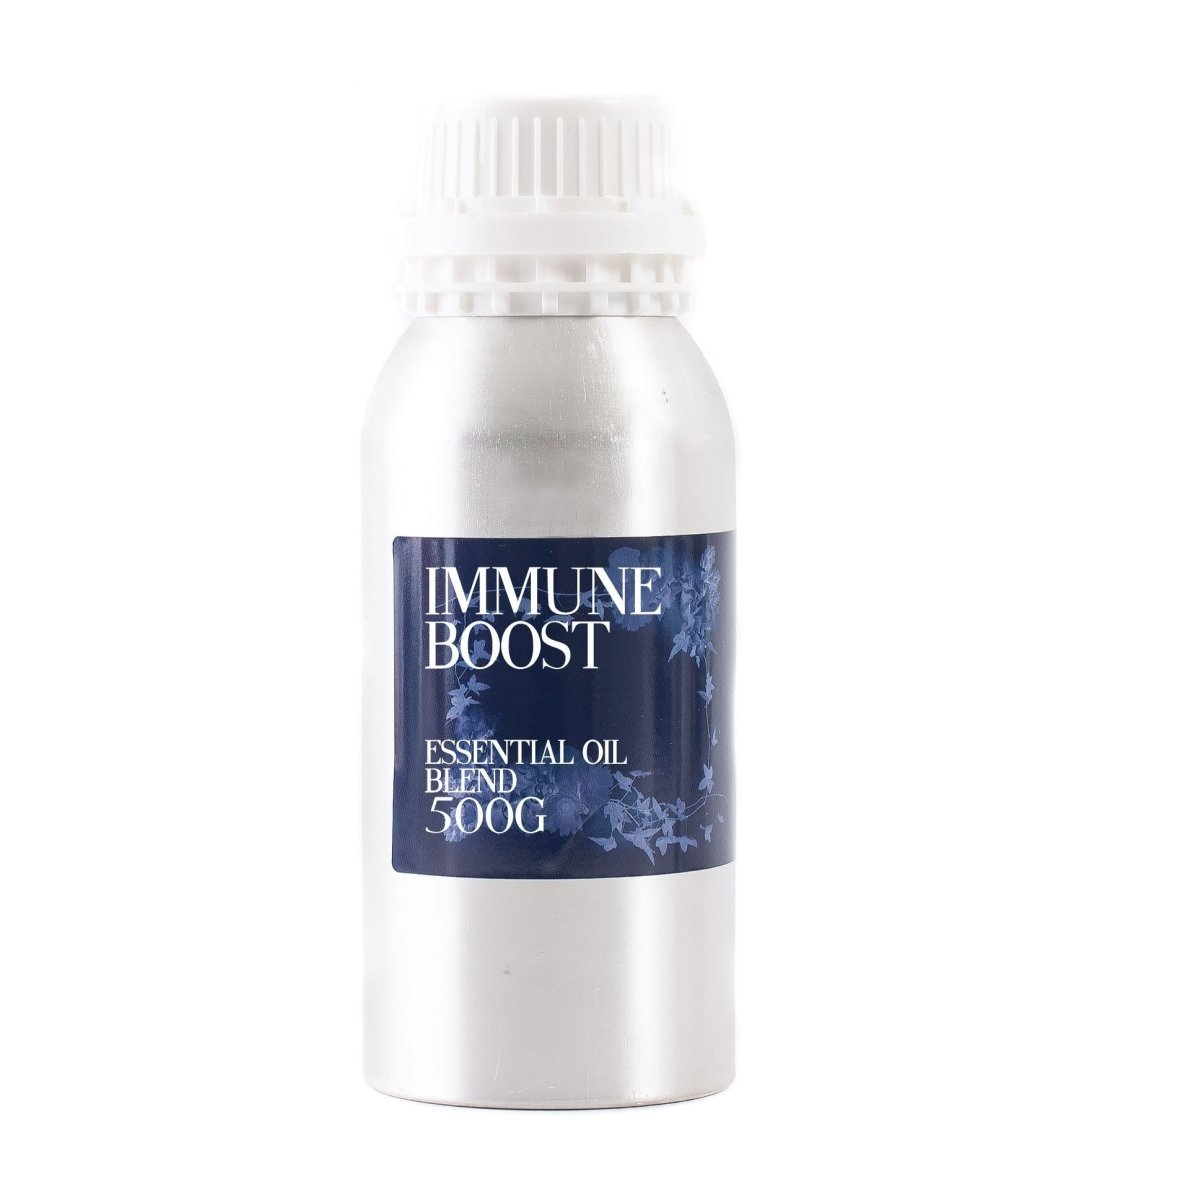 Immune Boost - Essential Oil Blends - Mystic Moments UK